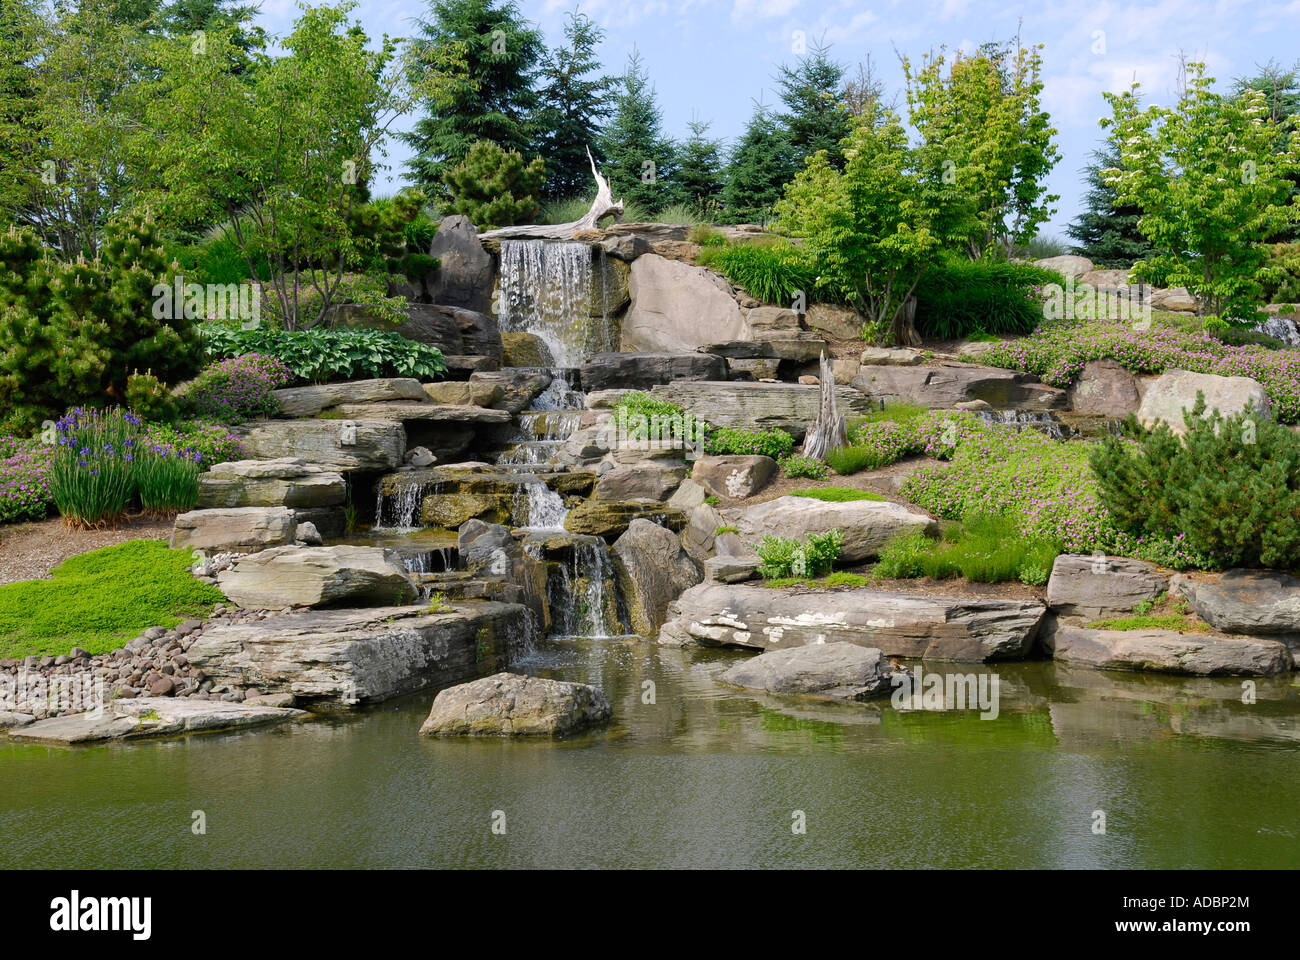 Scup stock photos scup stock images alamy - Frederik meijer gardens and sculpture park ...